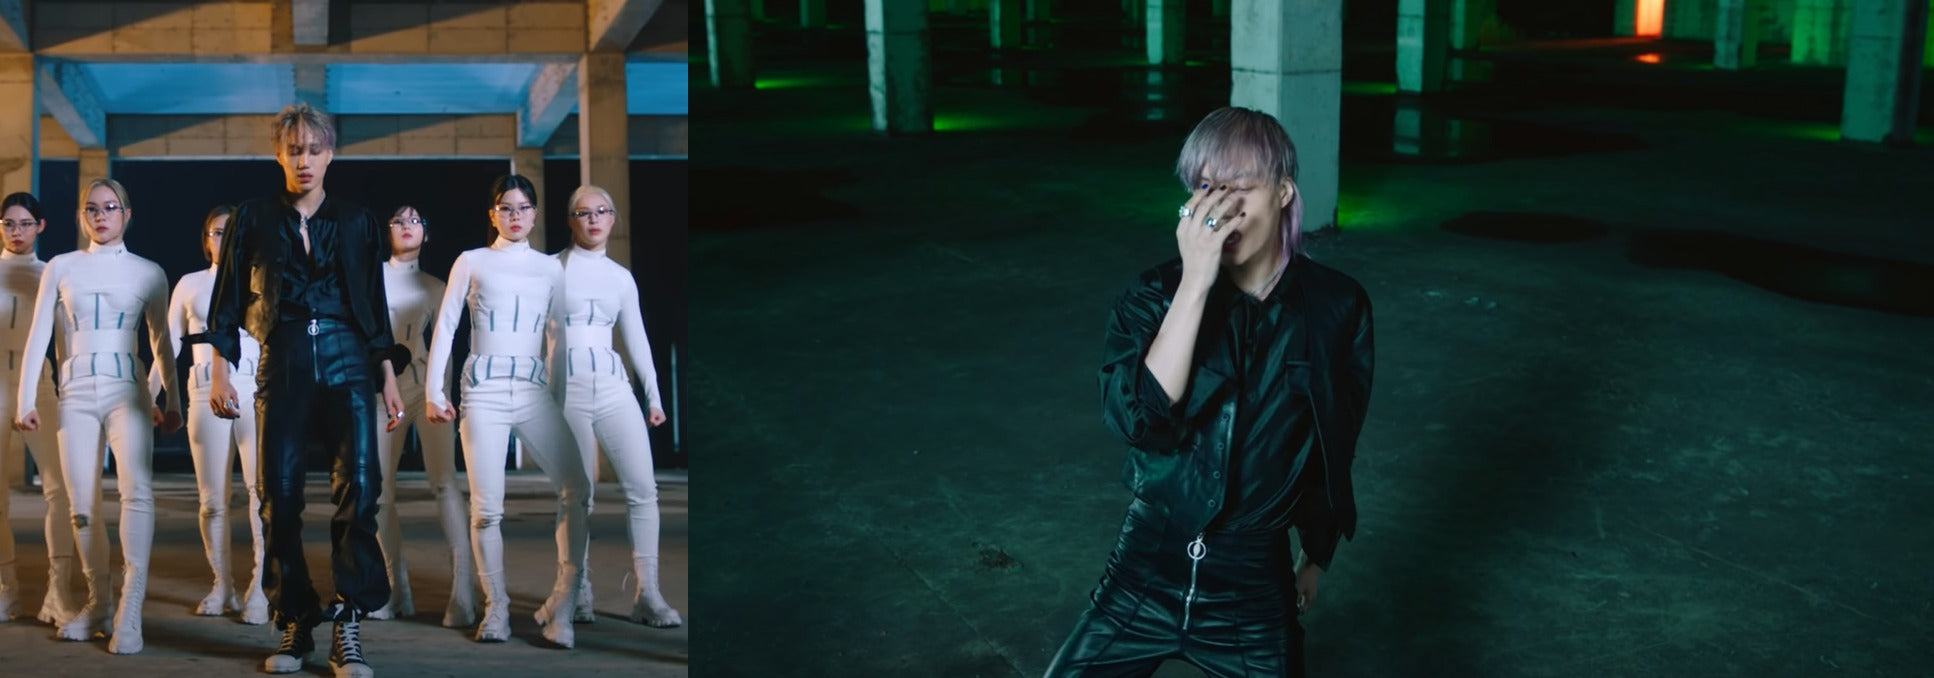 """ic: KAI in Rick Owens high-top sneakers. Featured in KAI's music video """"Mmmh""""."""